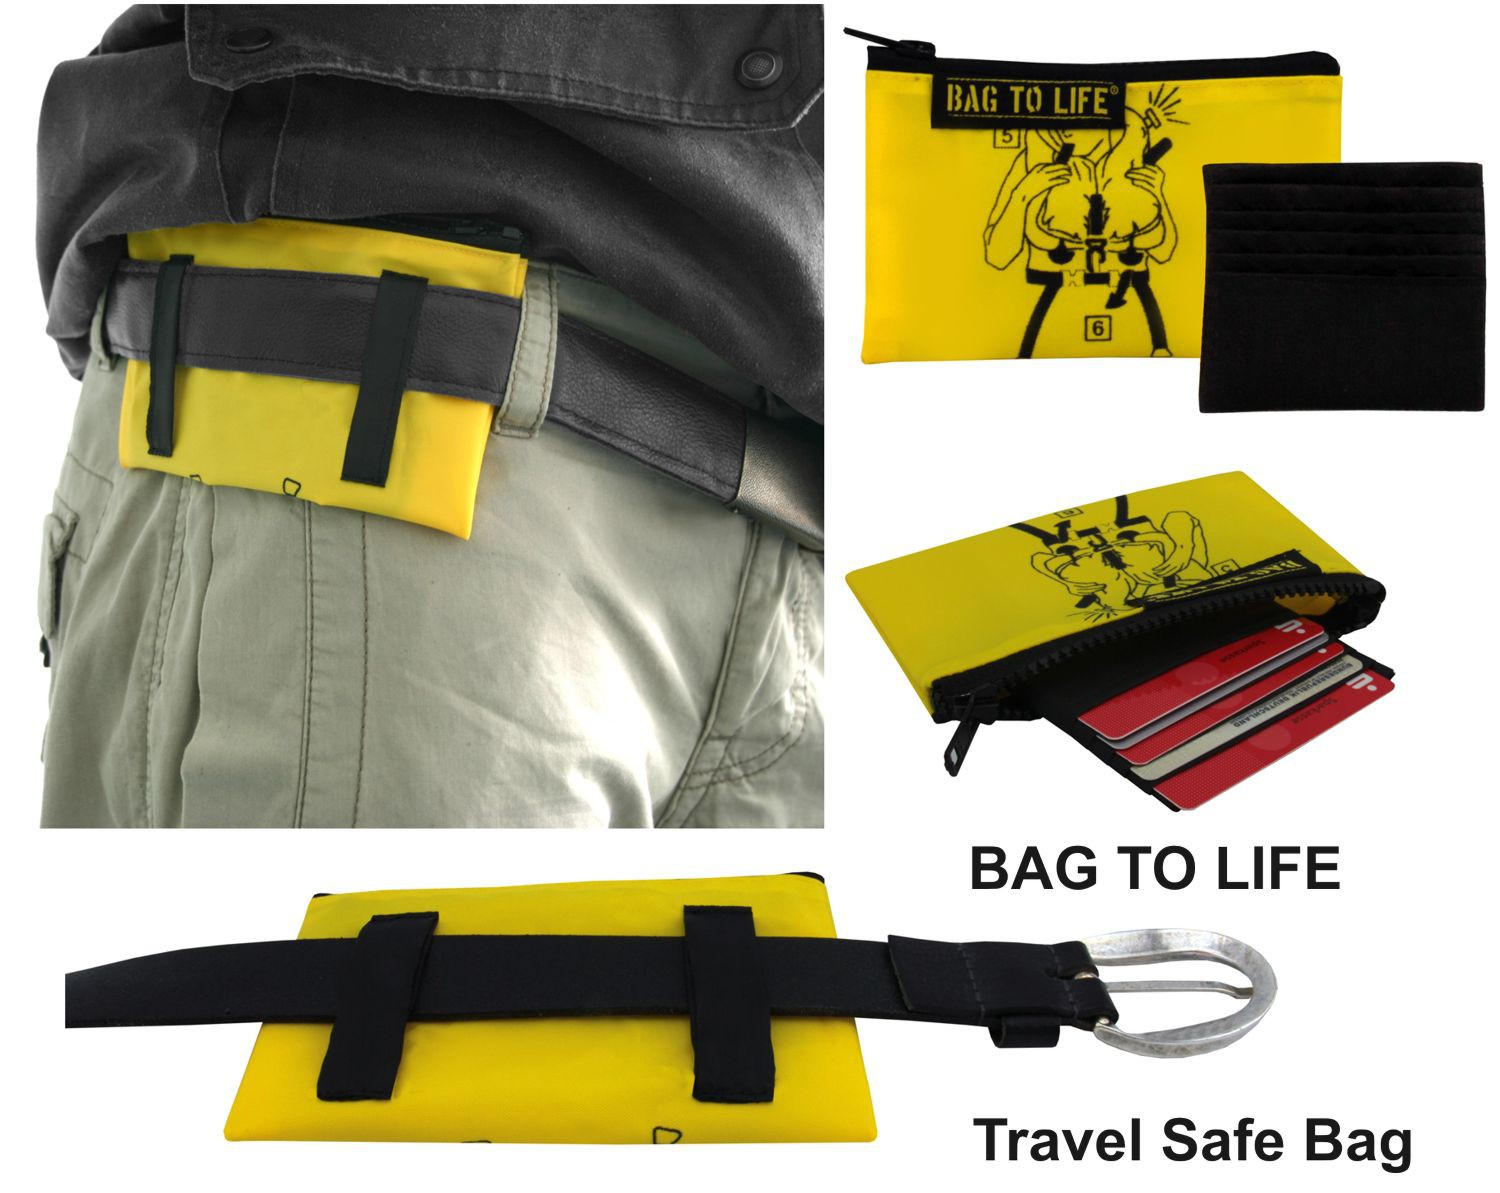 BAG TO LIFE Brieftasche TRAVEL SAFE BAG Geldbeutel Wallet Reisegeldbeutel Portemonnaie Upcycling aus einer Rettungsweste